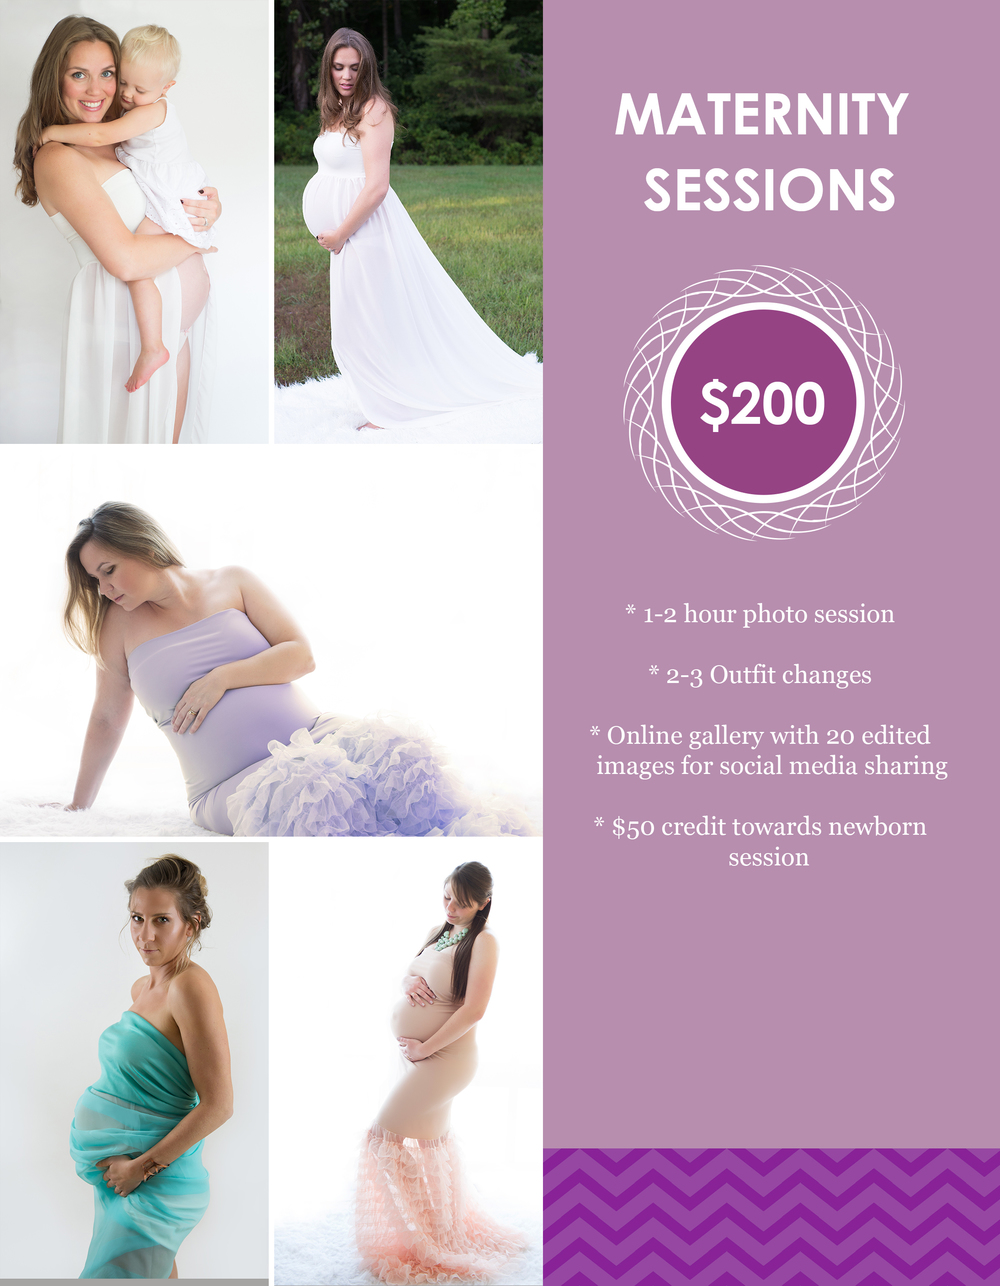 Maternity sessions occur anywhere from 30-36 weeks depending on personal pregnancy experience.